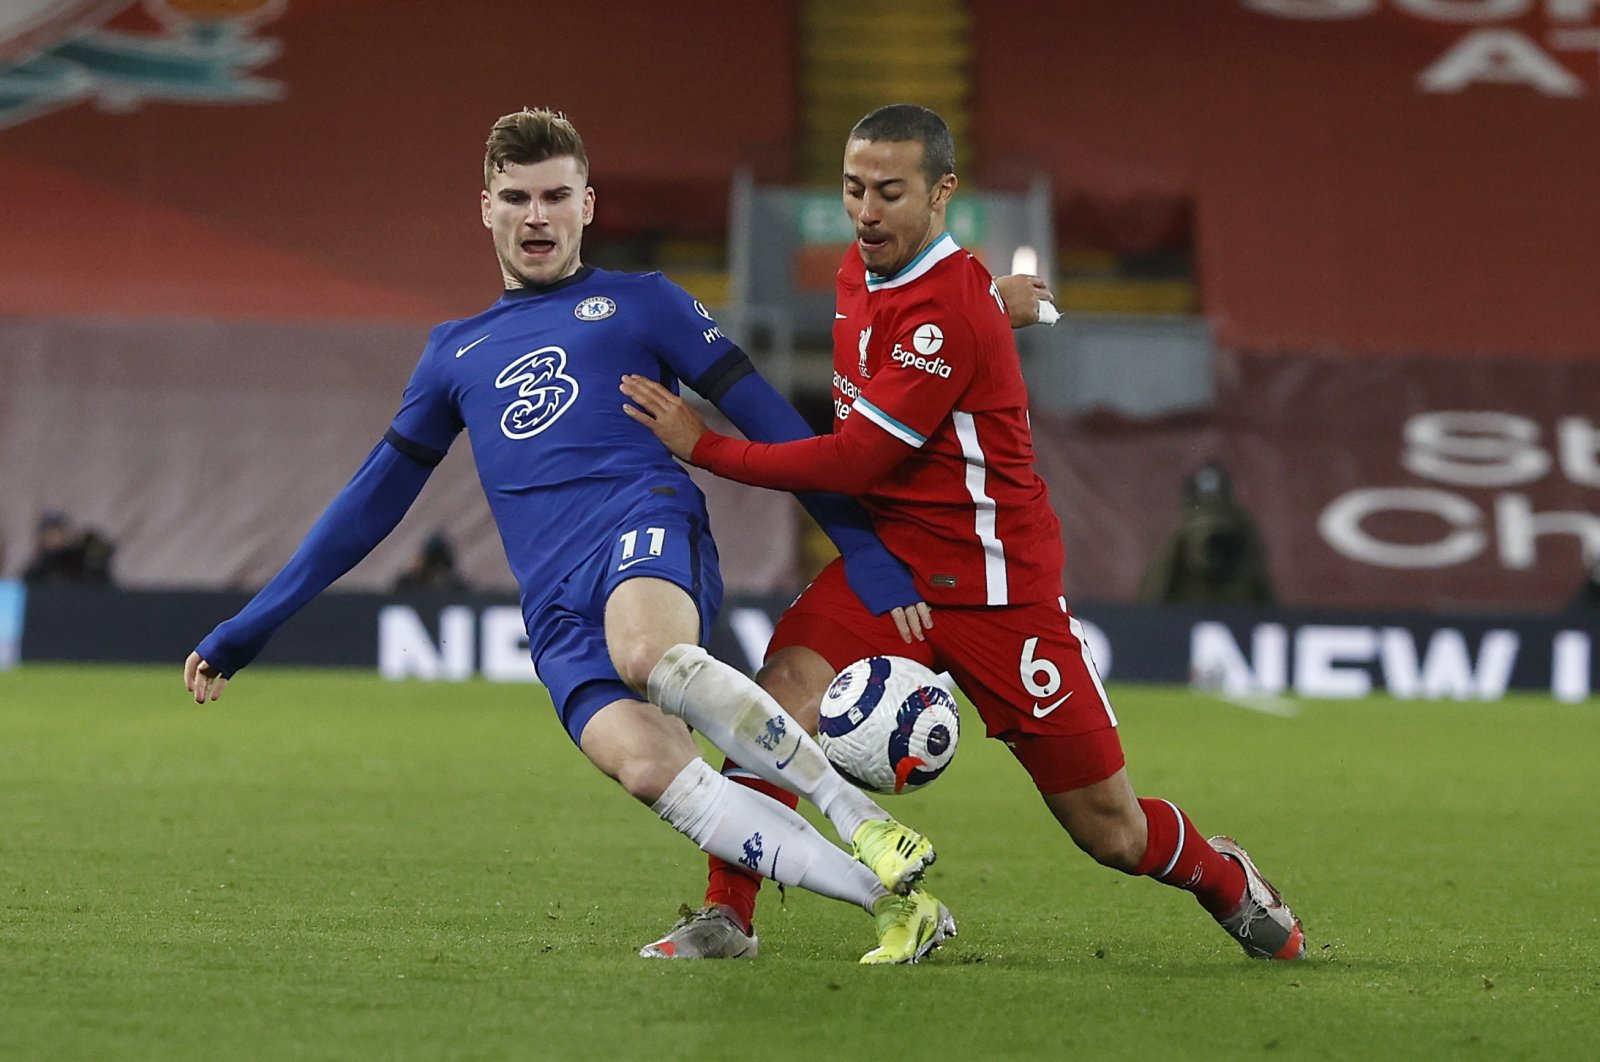 Chelsea's Timo Werner (L) vies for the ball with Liverpool's Thiago during a Premier League match at Anfield stadium in Liverpool, England, March 4, 2021. (AP Photo)